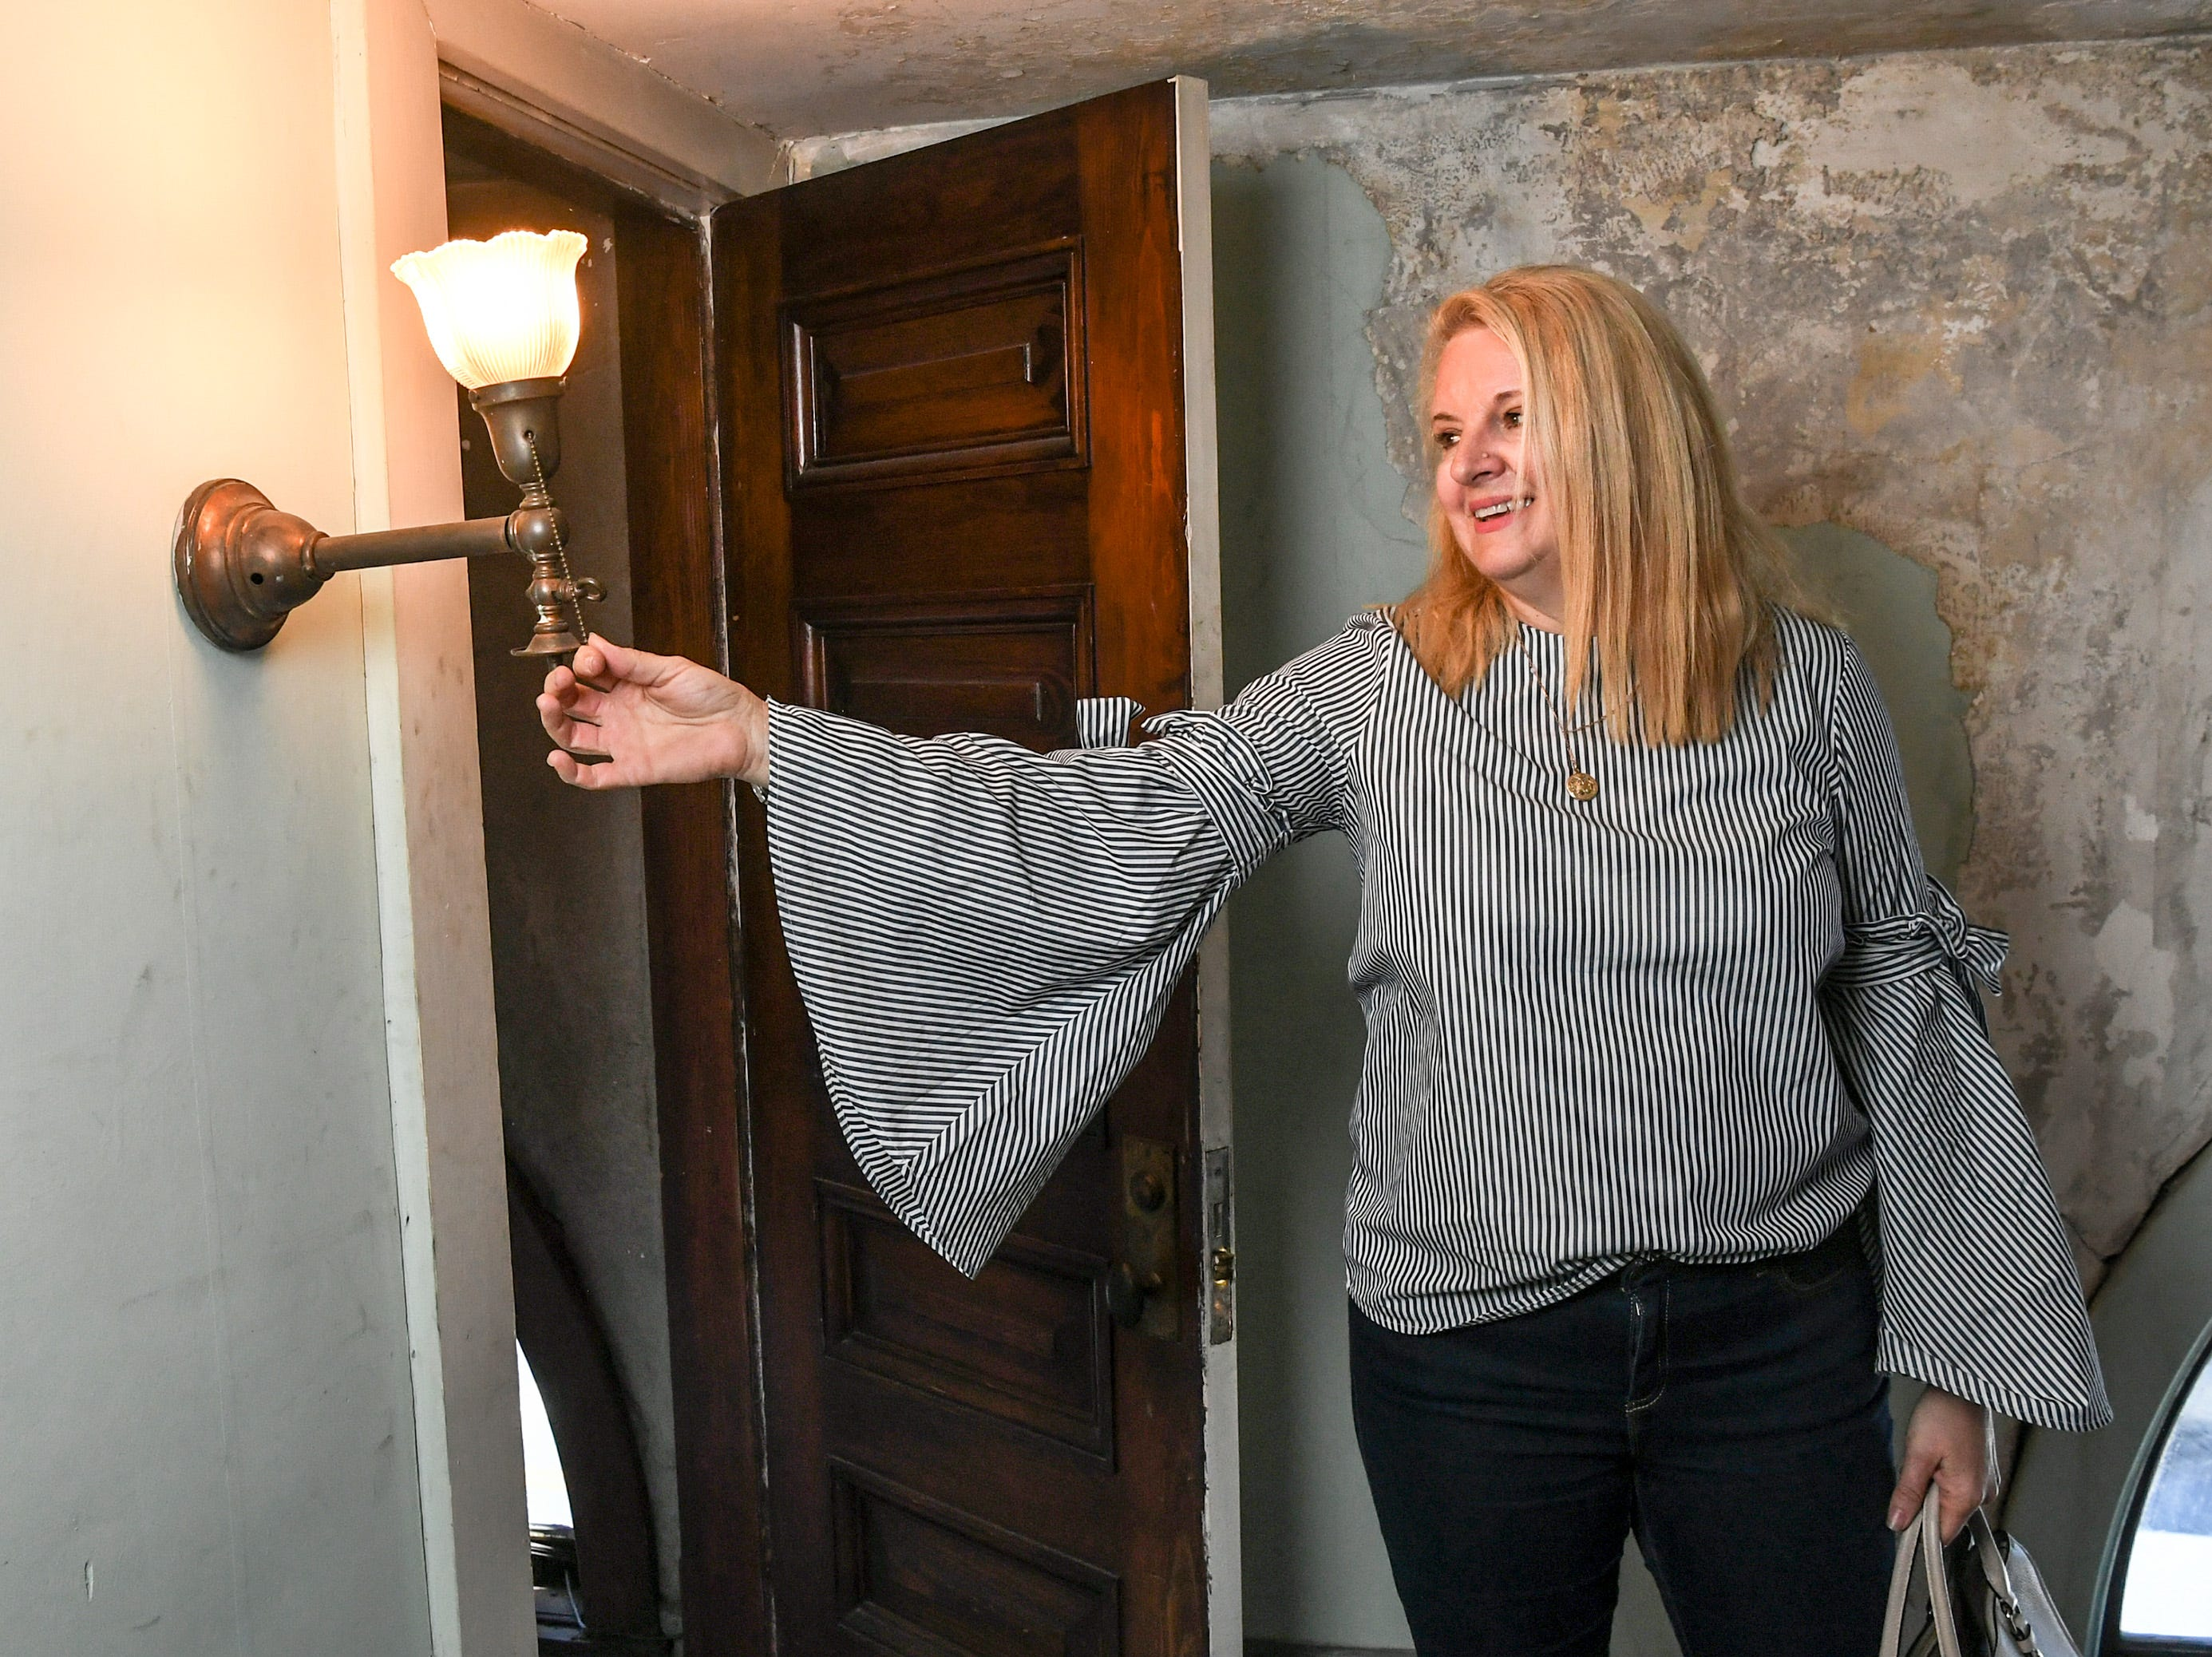 Ann Kummrow looks at a light upstairs in the building she and her husband Rick bought at 401 North Main Street in downtown Anderson. The couple pitched their plan to create The Historic Postmark Anderson, a mix of housing upstairs, retail on the main floor, and possibly a restaurant downstairs. The structure built in 1909 was previously a funeral home, and before that a United States Post Office.